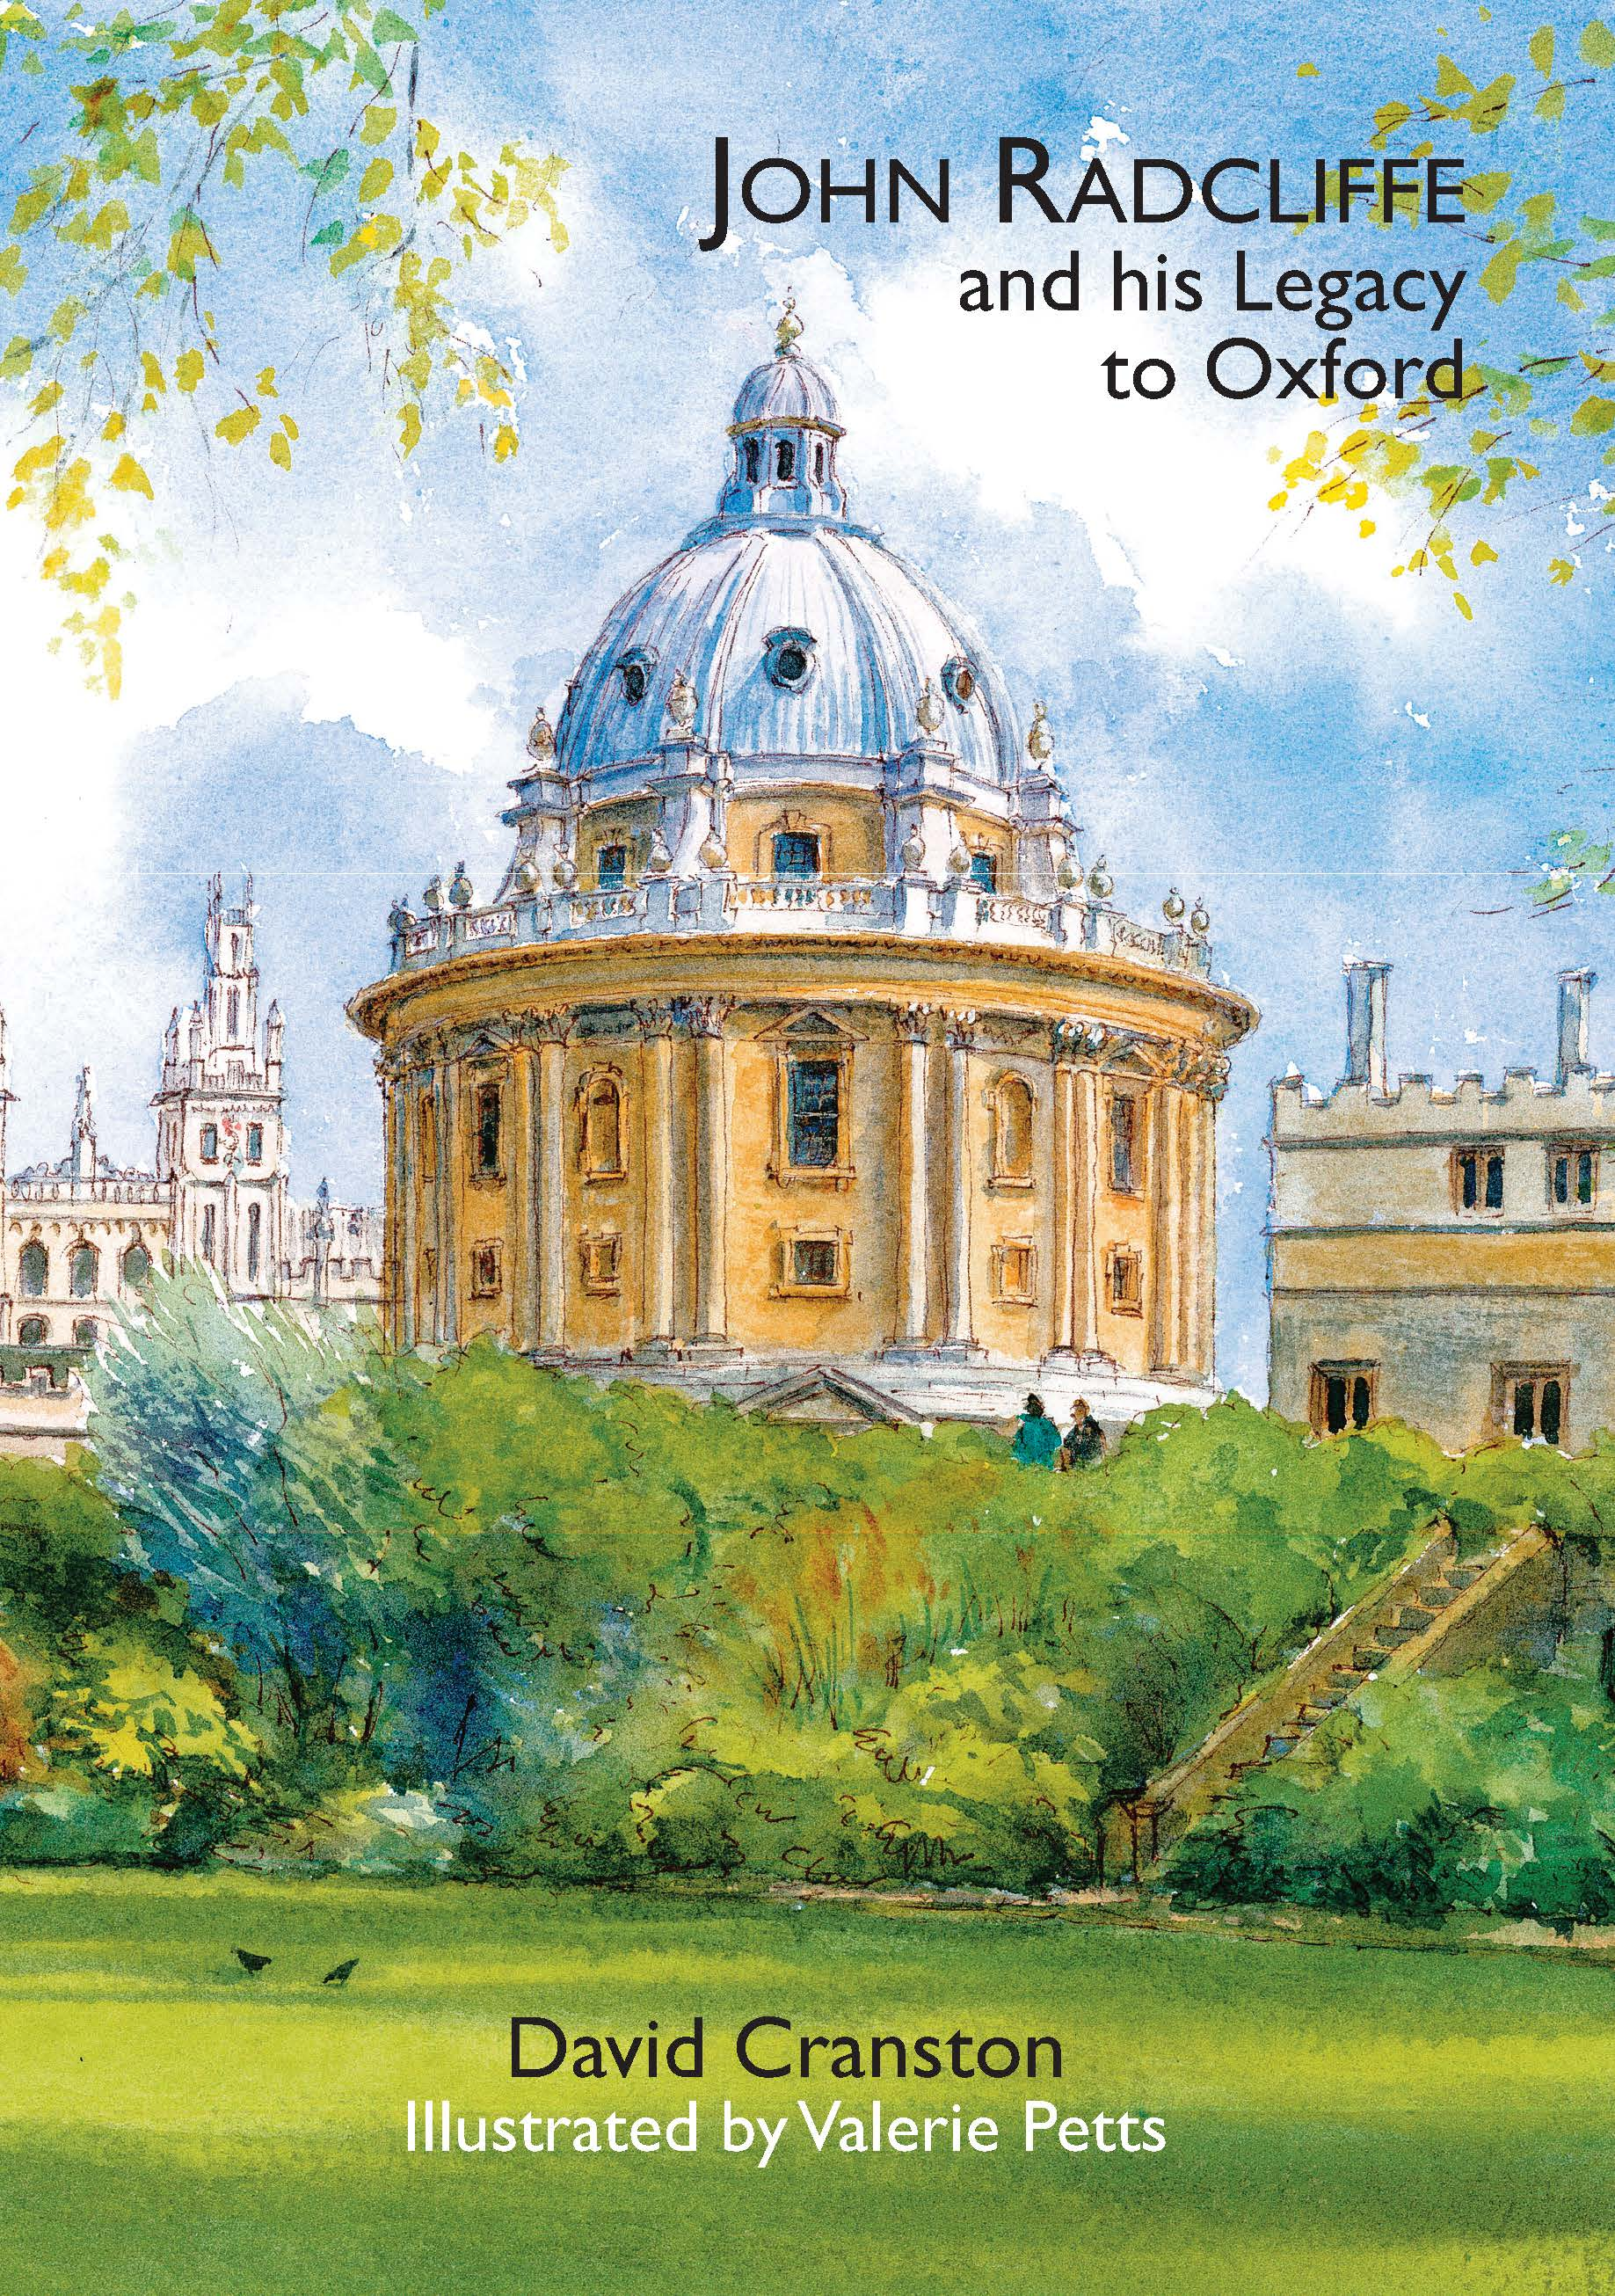 John Radcliffe and his Legacy to Oxford.jpg